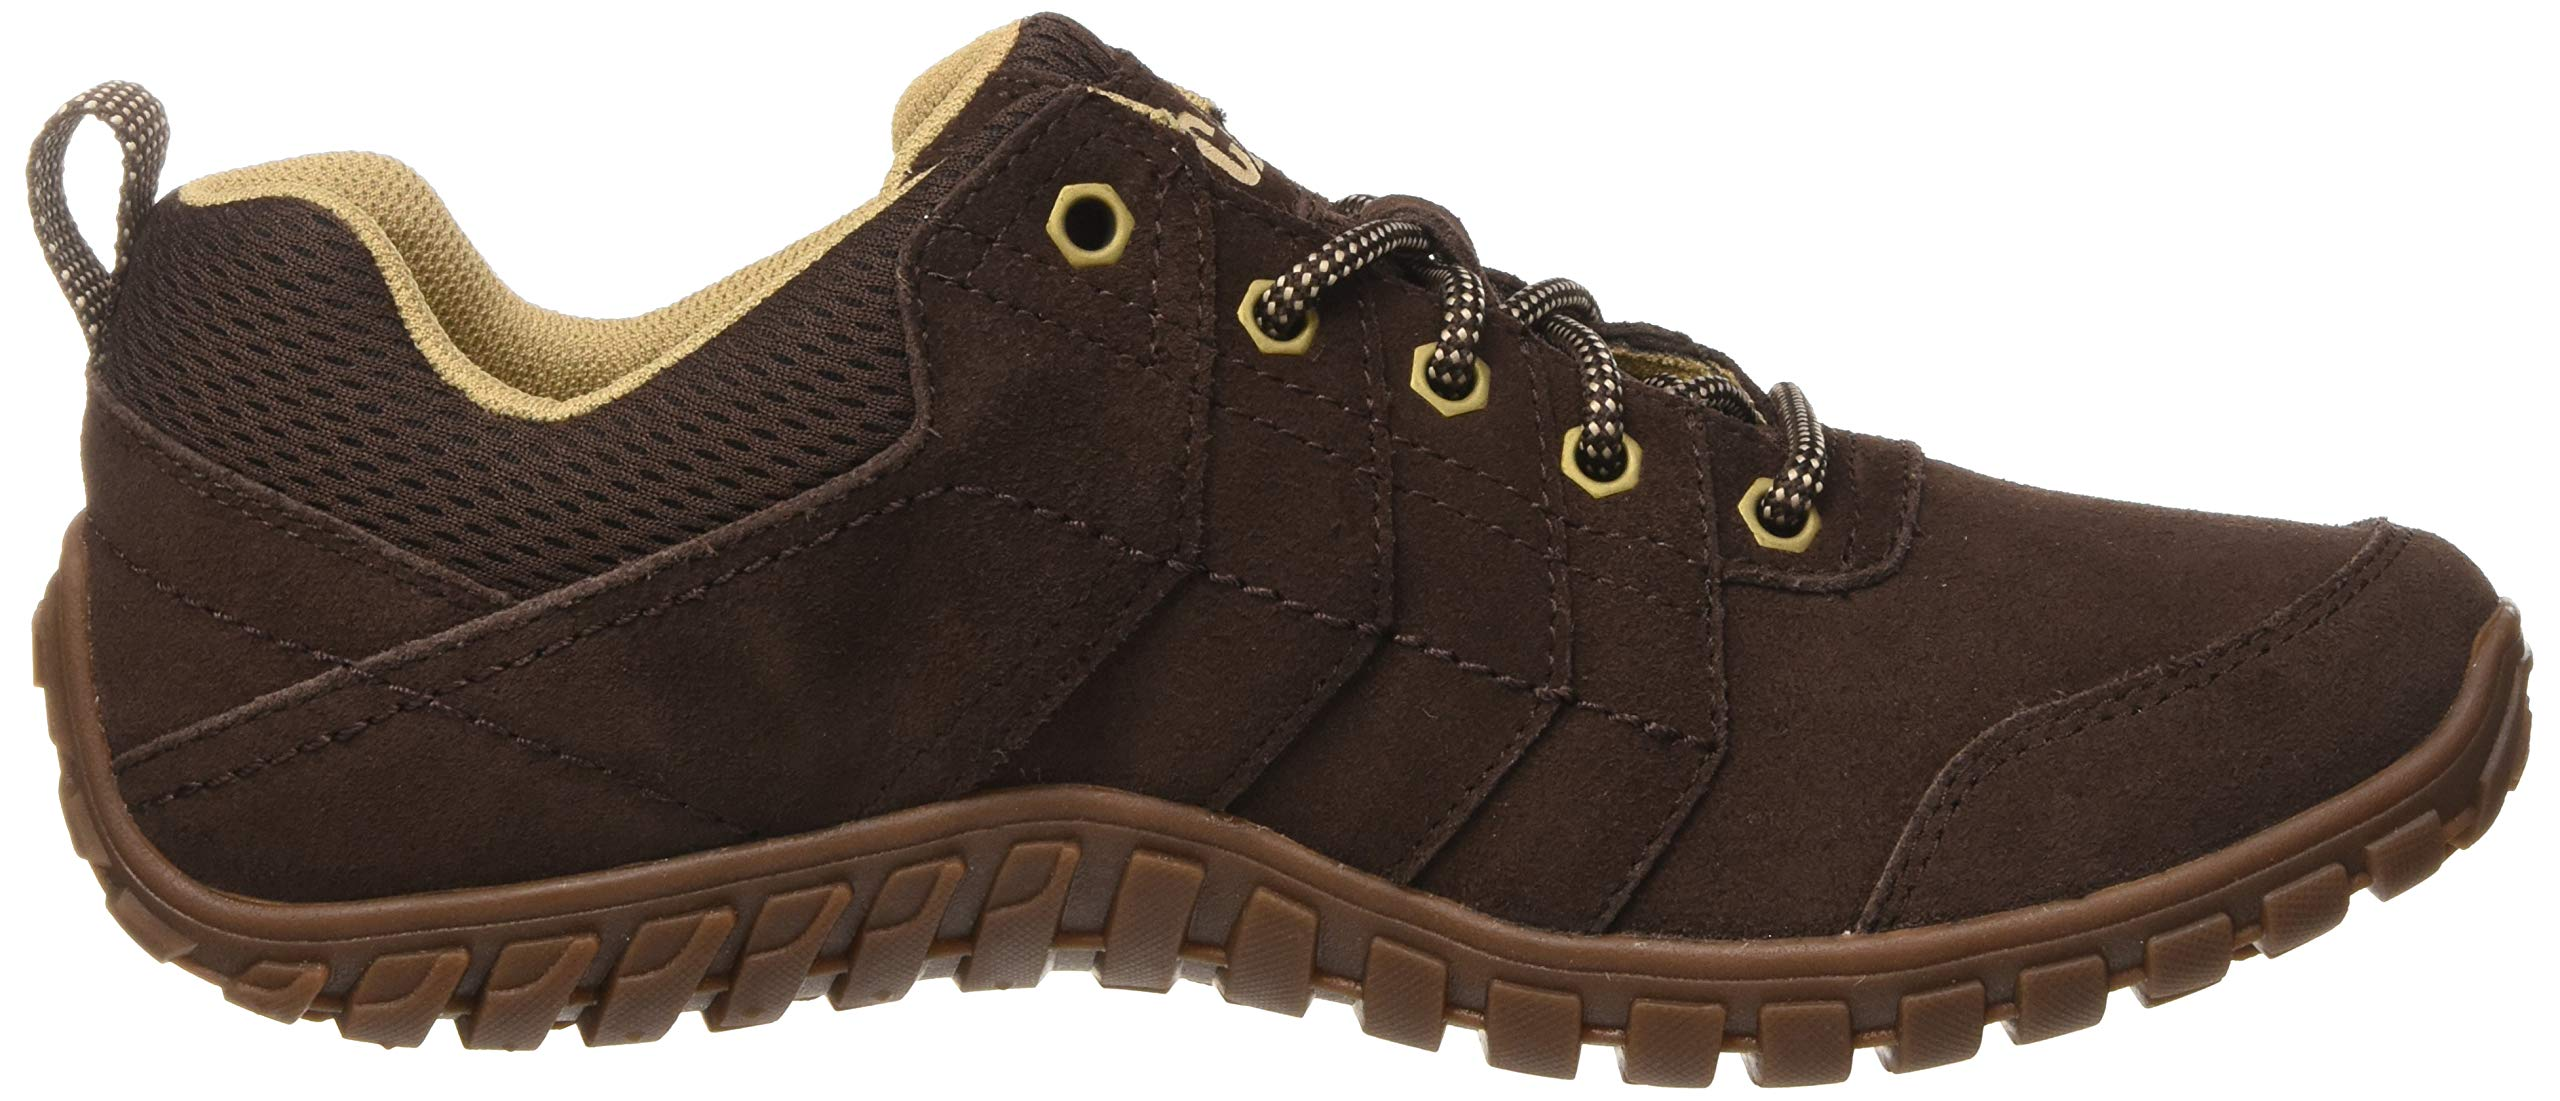 Arise Mens Casual Lace Up Trainers